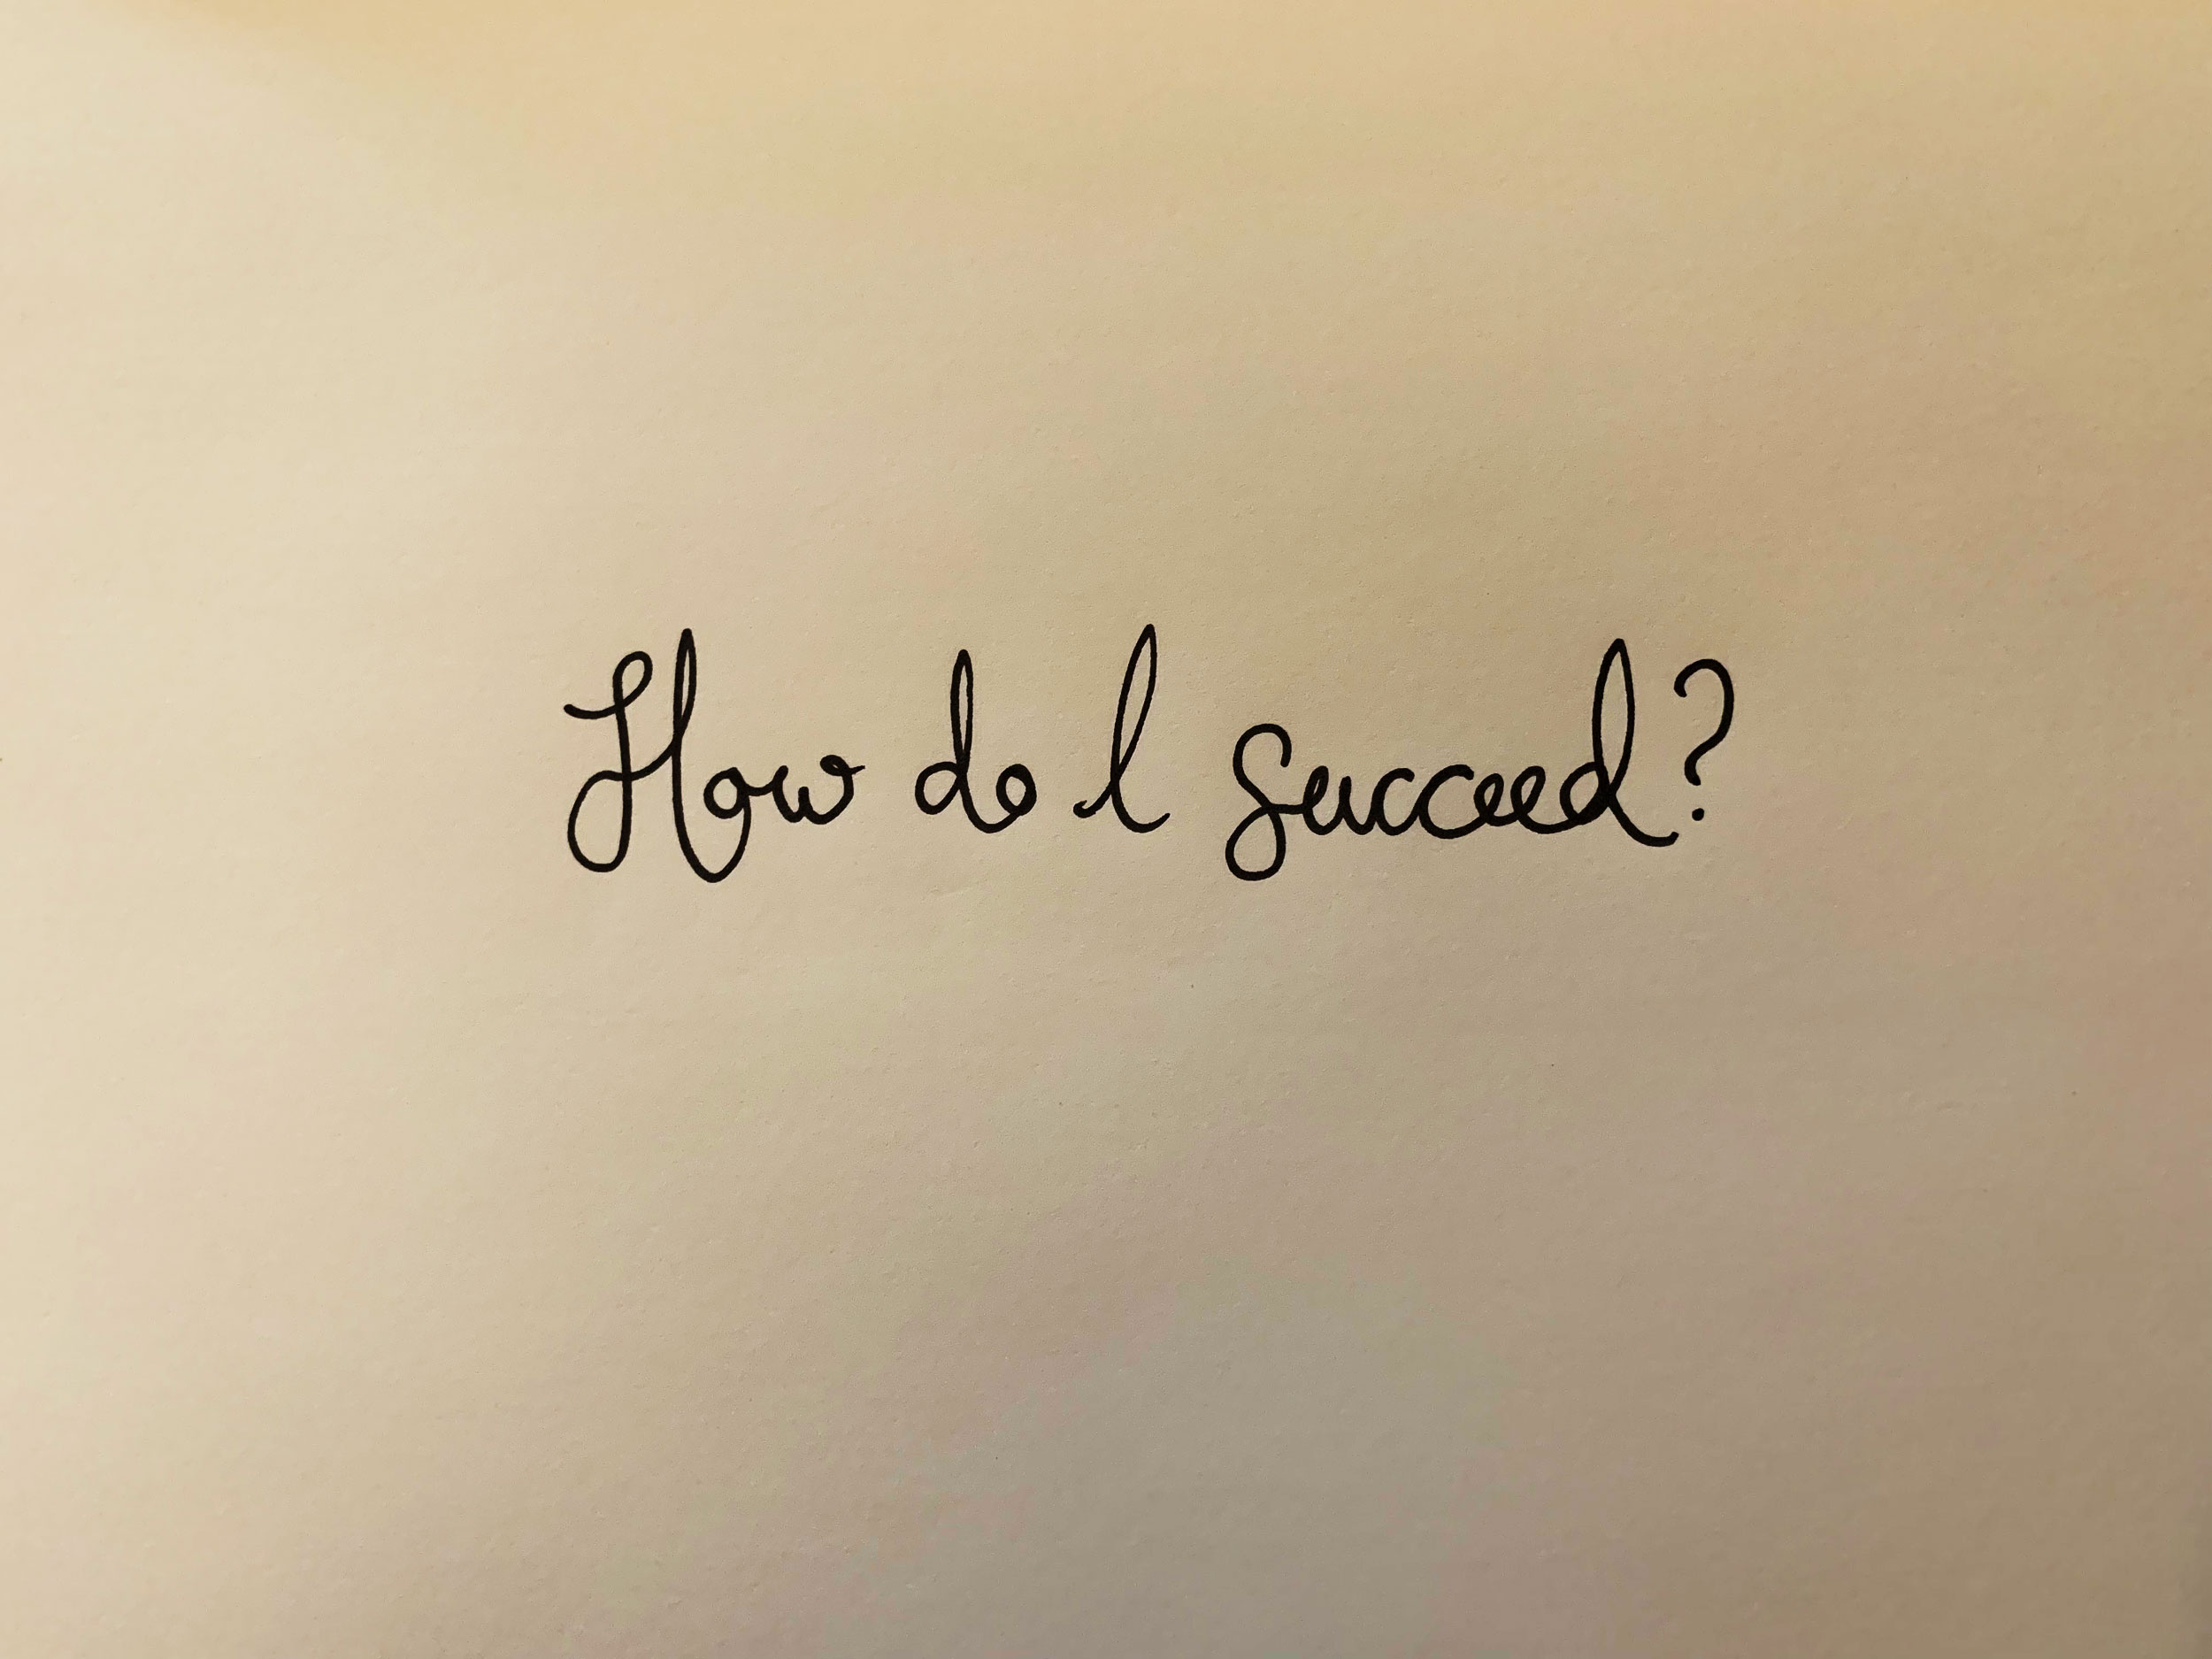 How do I succeed? Drawing Luke Hockley